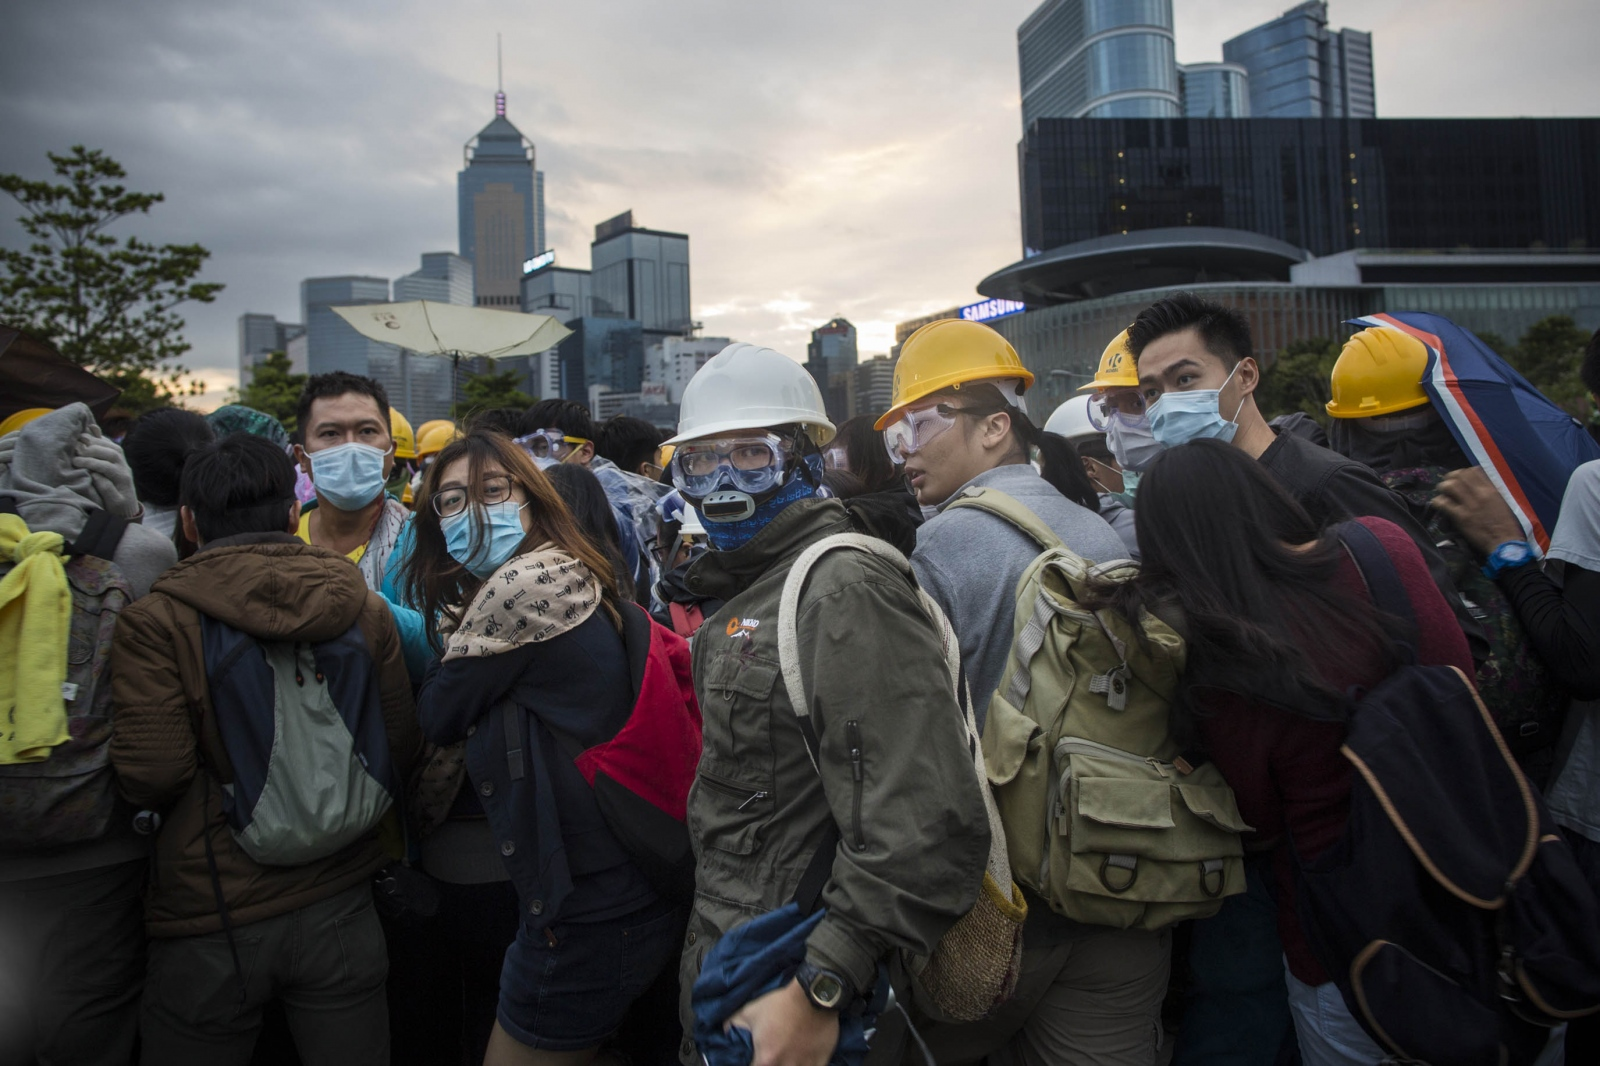 Protesters look back at approaching police, following a violent night of scuffles with them in the Admiralty district of Hong Kong, in the early hours of December 1, 2014. Protesters attempted to retake and occupy a major road that had earlier been cleared by the police weeks earlier.